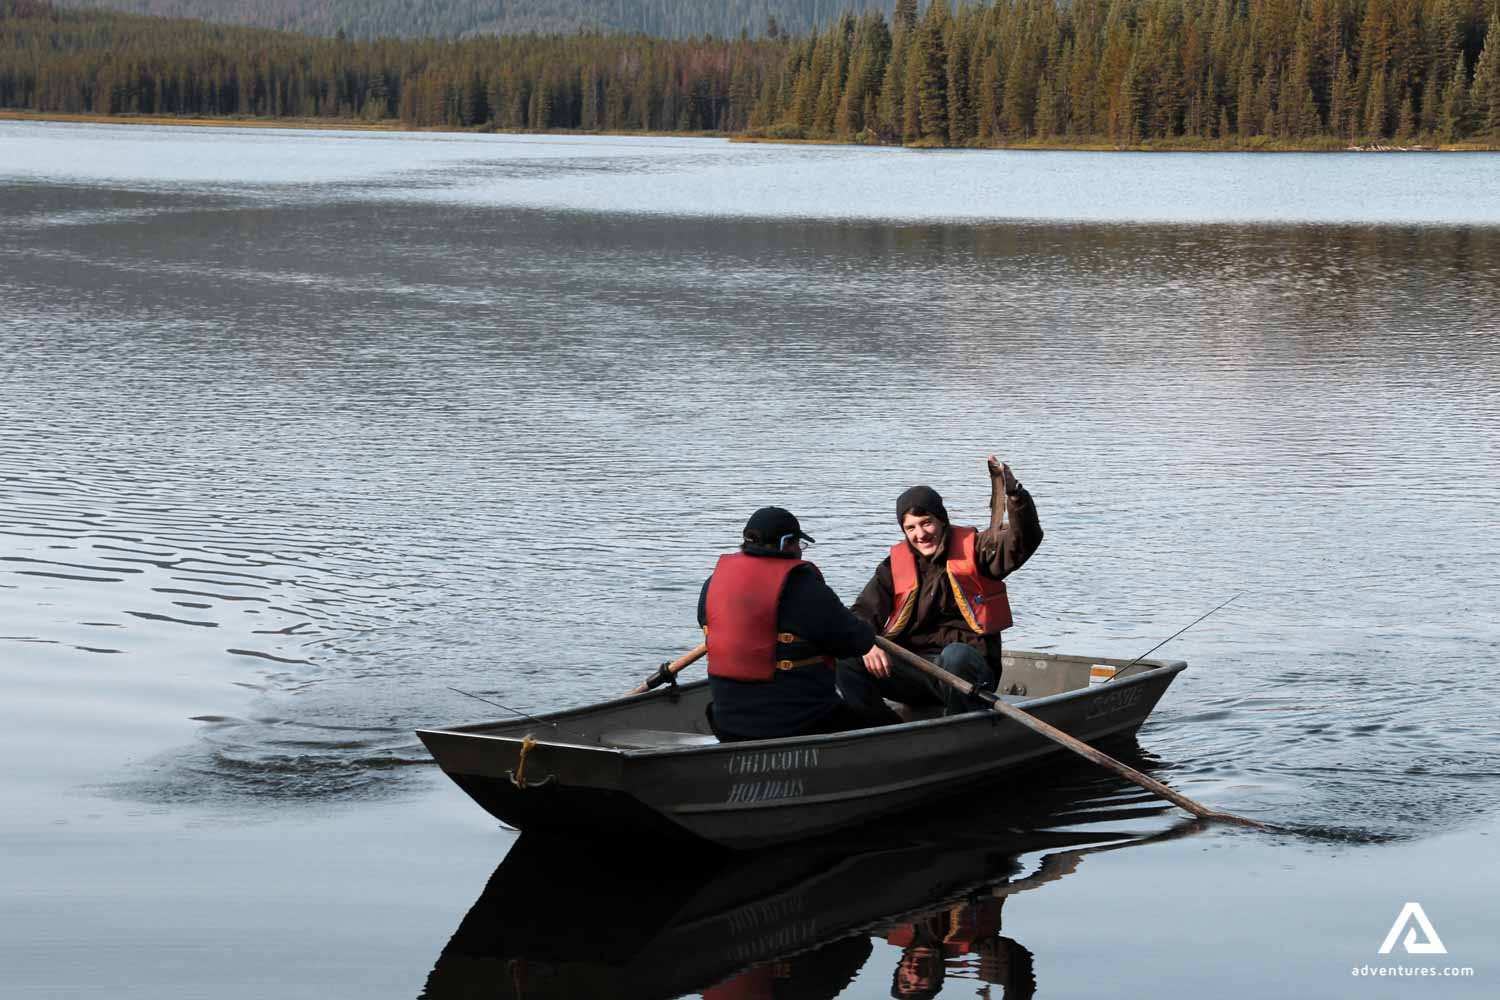 Two mid-age men fishing from a boat